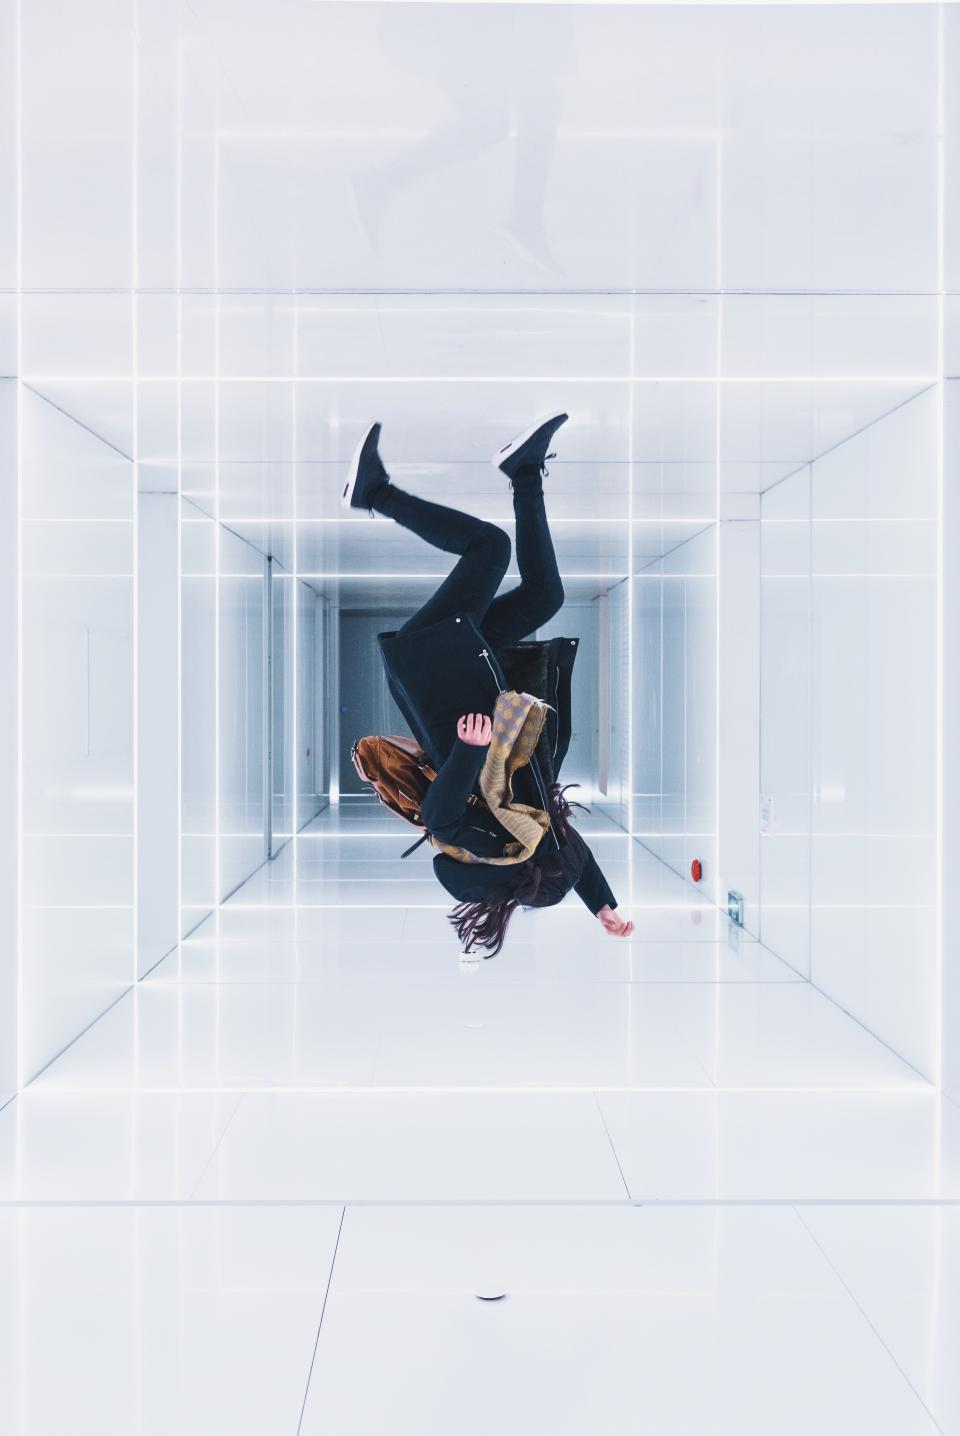 building white indoor wall floor people woman jump reflection